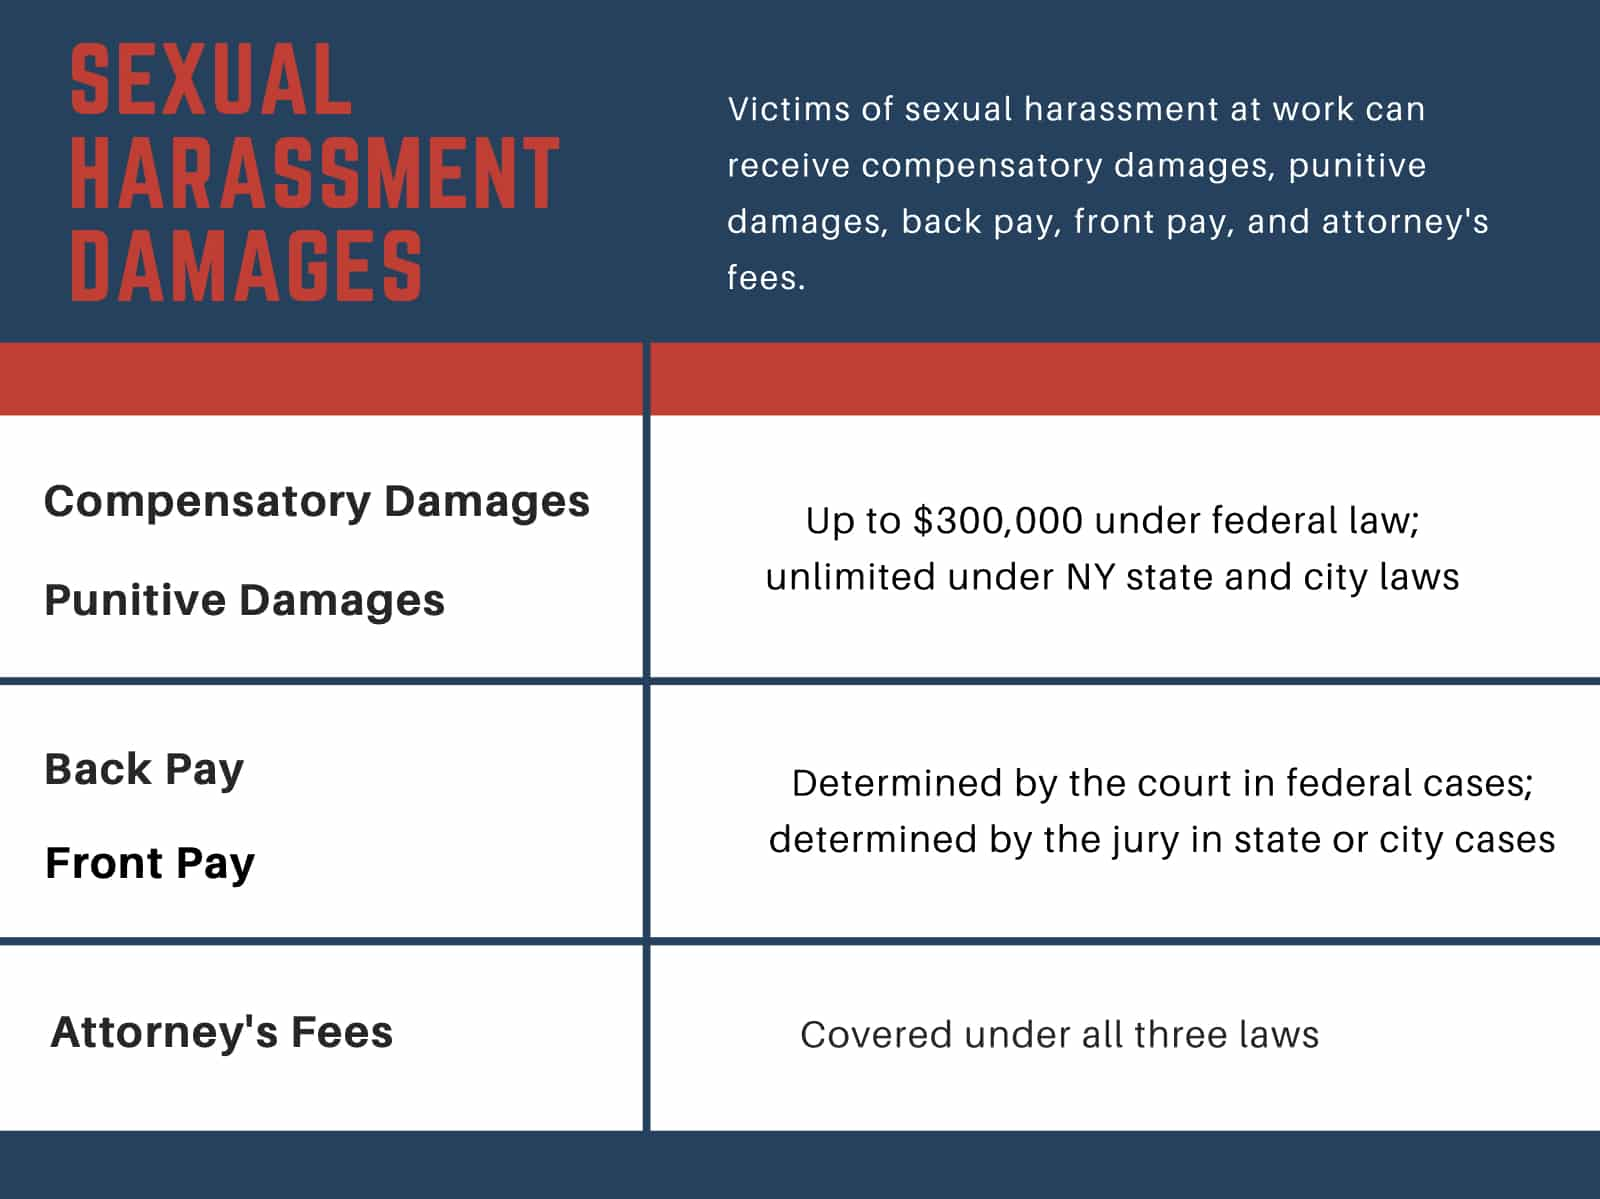 sexual harassment damages